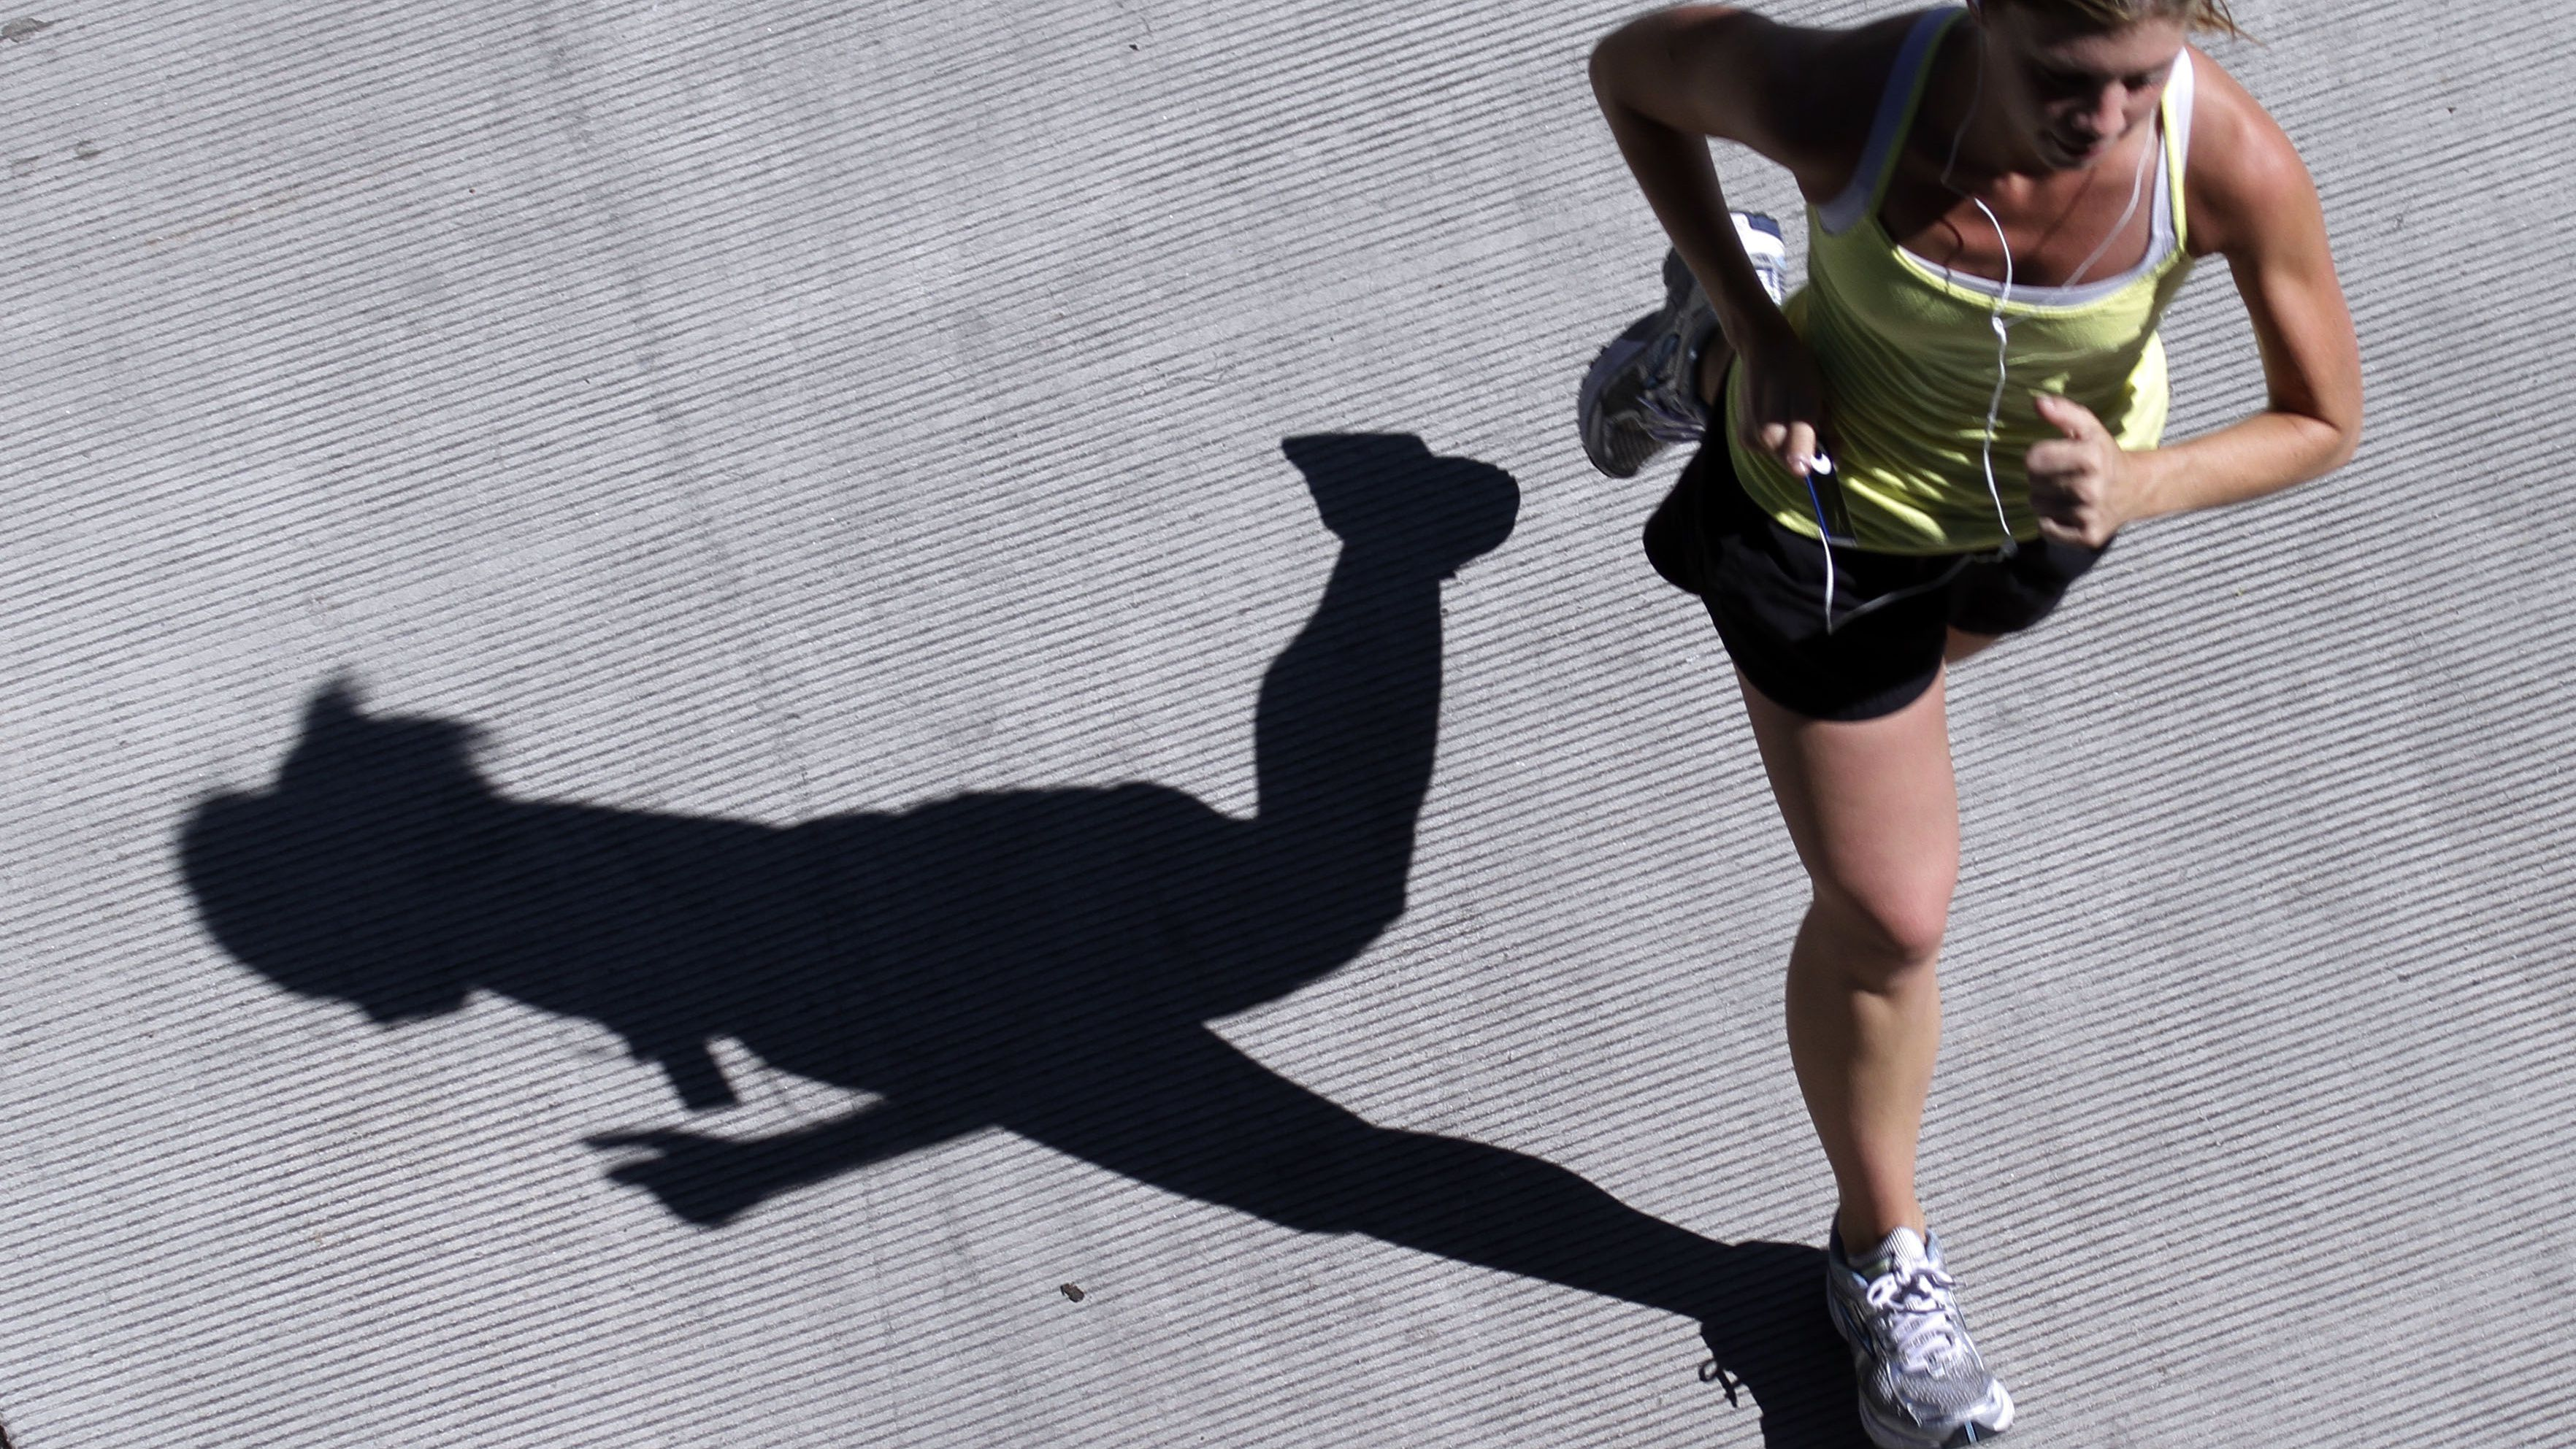 Standing (or running) in your own shadow.